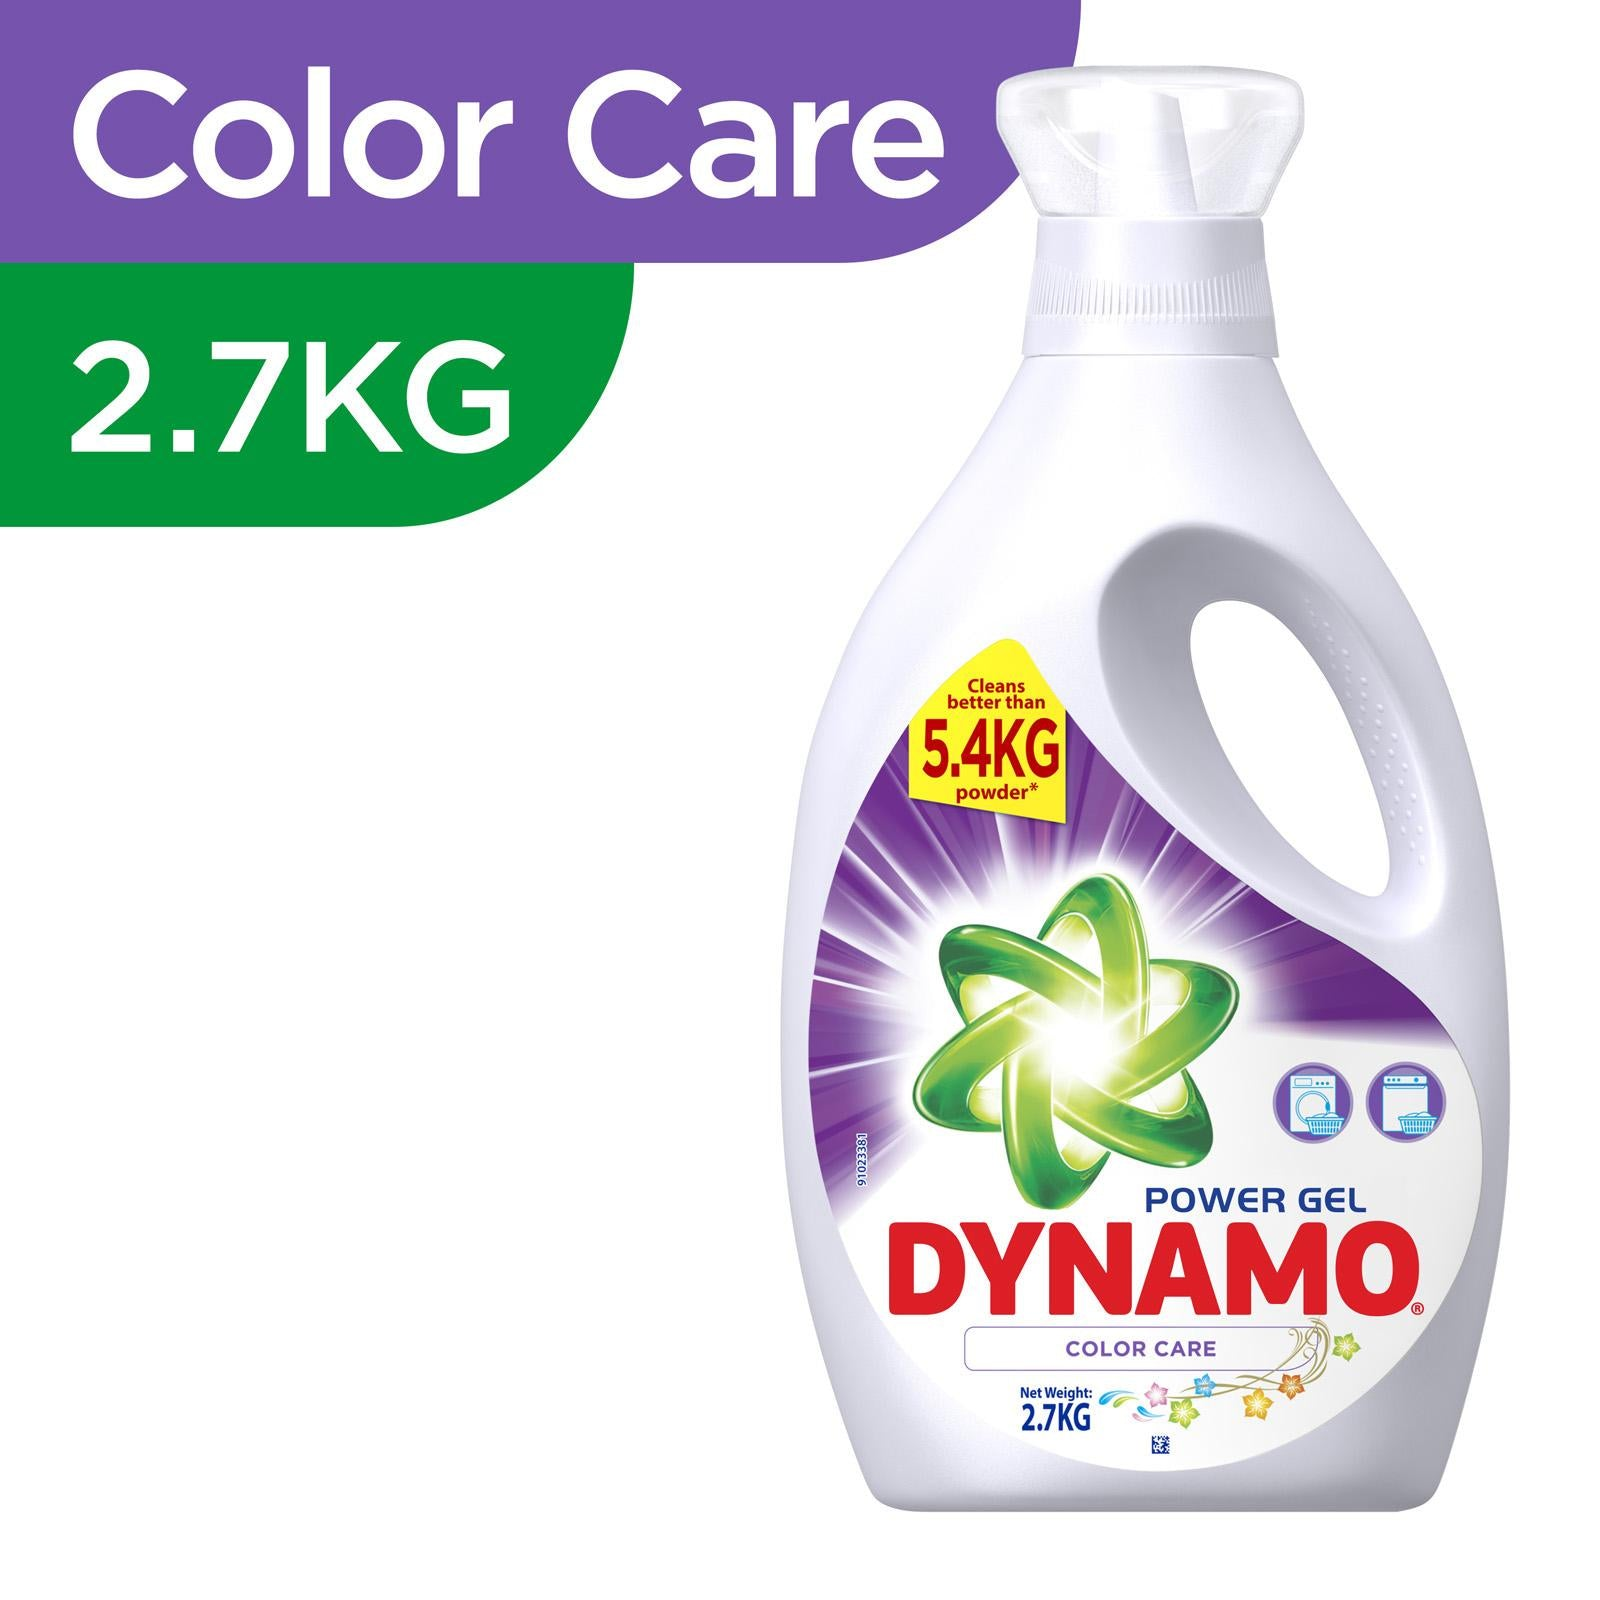 Dynamo Power Gel Color Care Detergent 2.7Kg